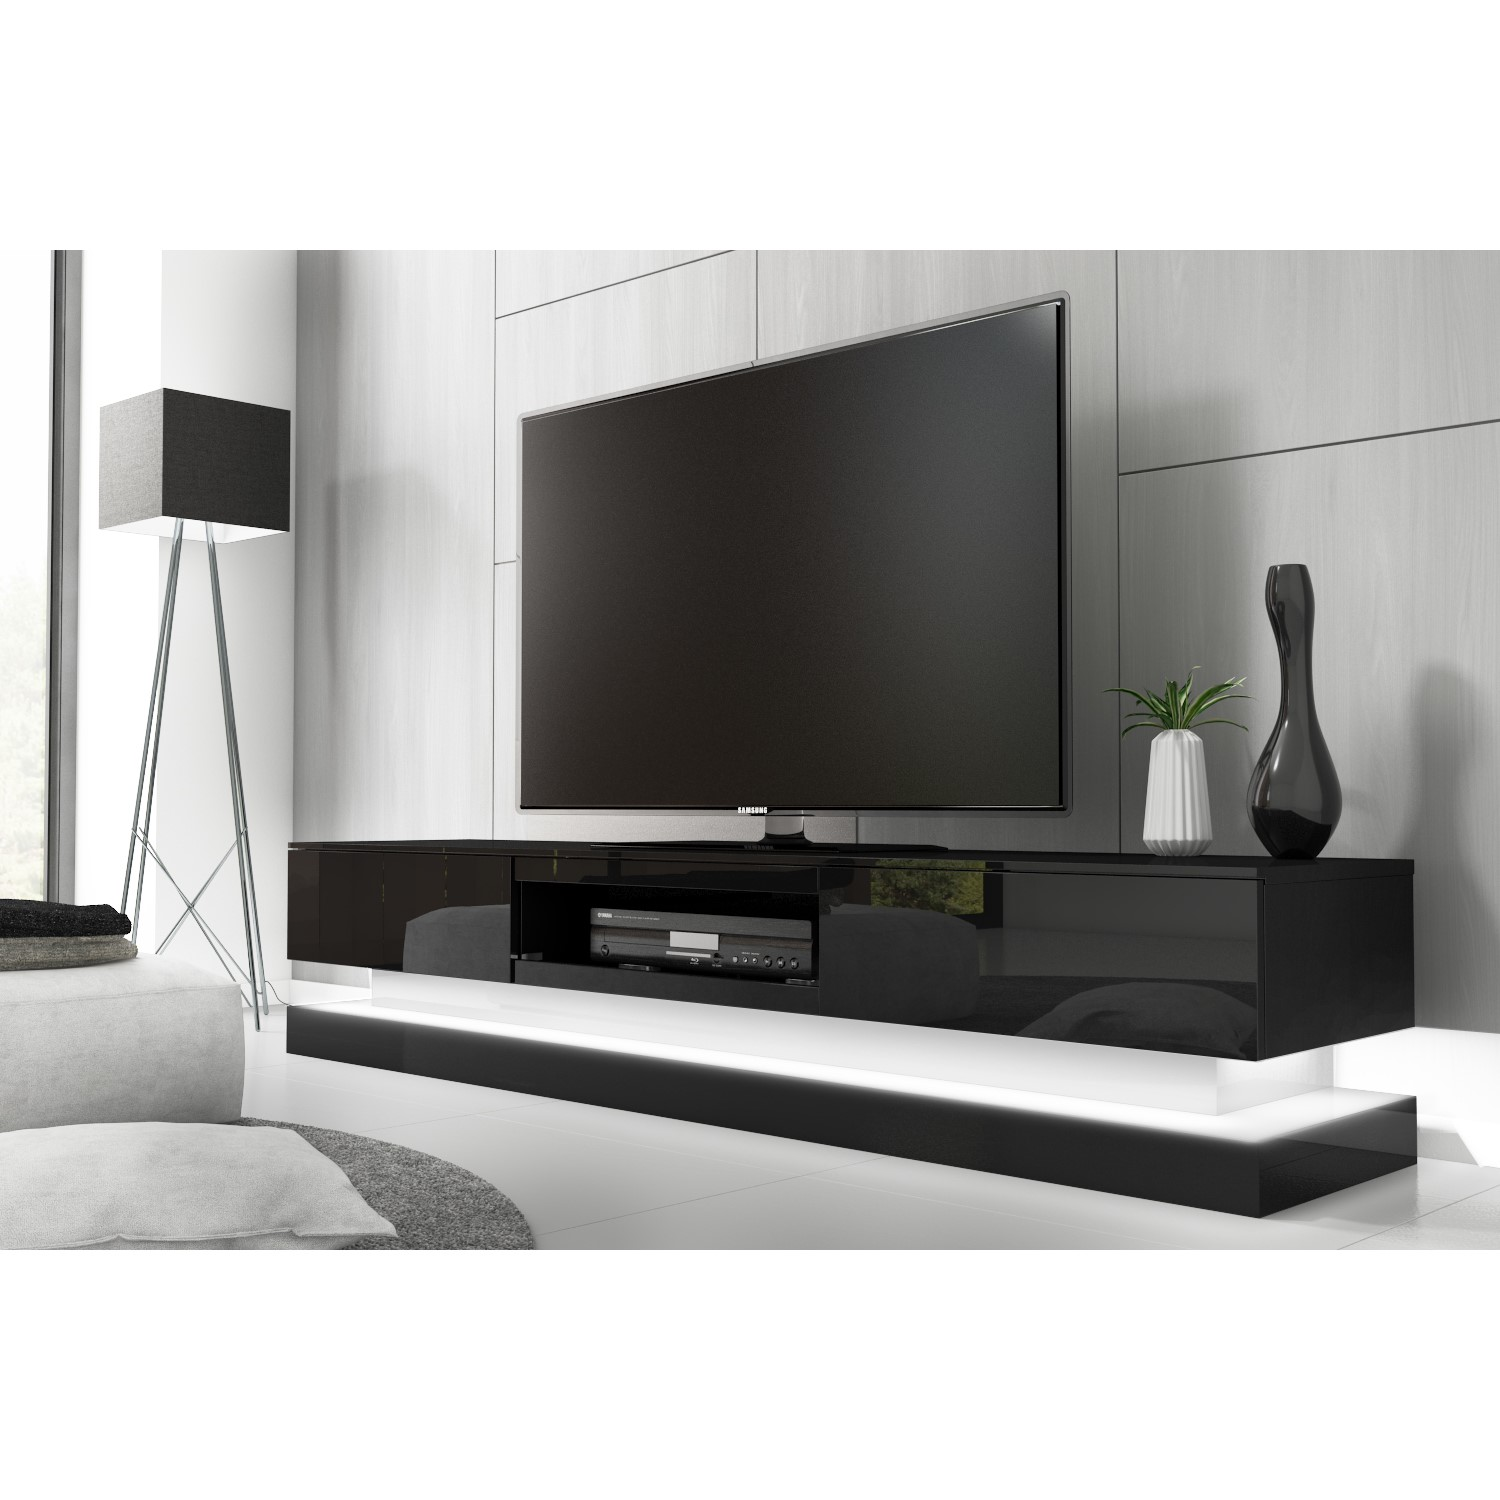 finest selection a1351 fd2f1 Evoque Large Black High Gloss TV Unit with LED Lighting - TV's up to 70